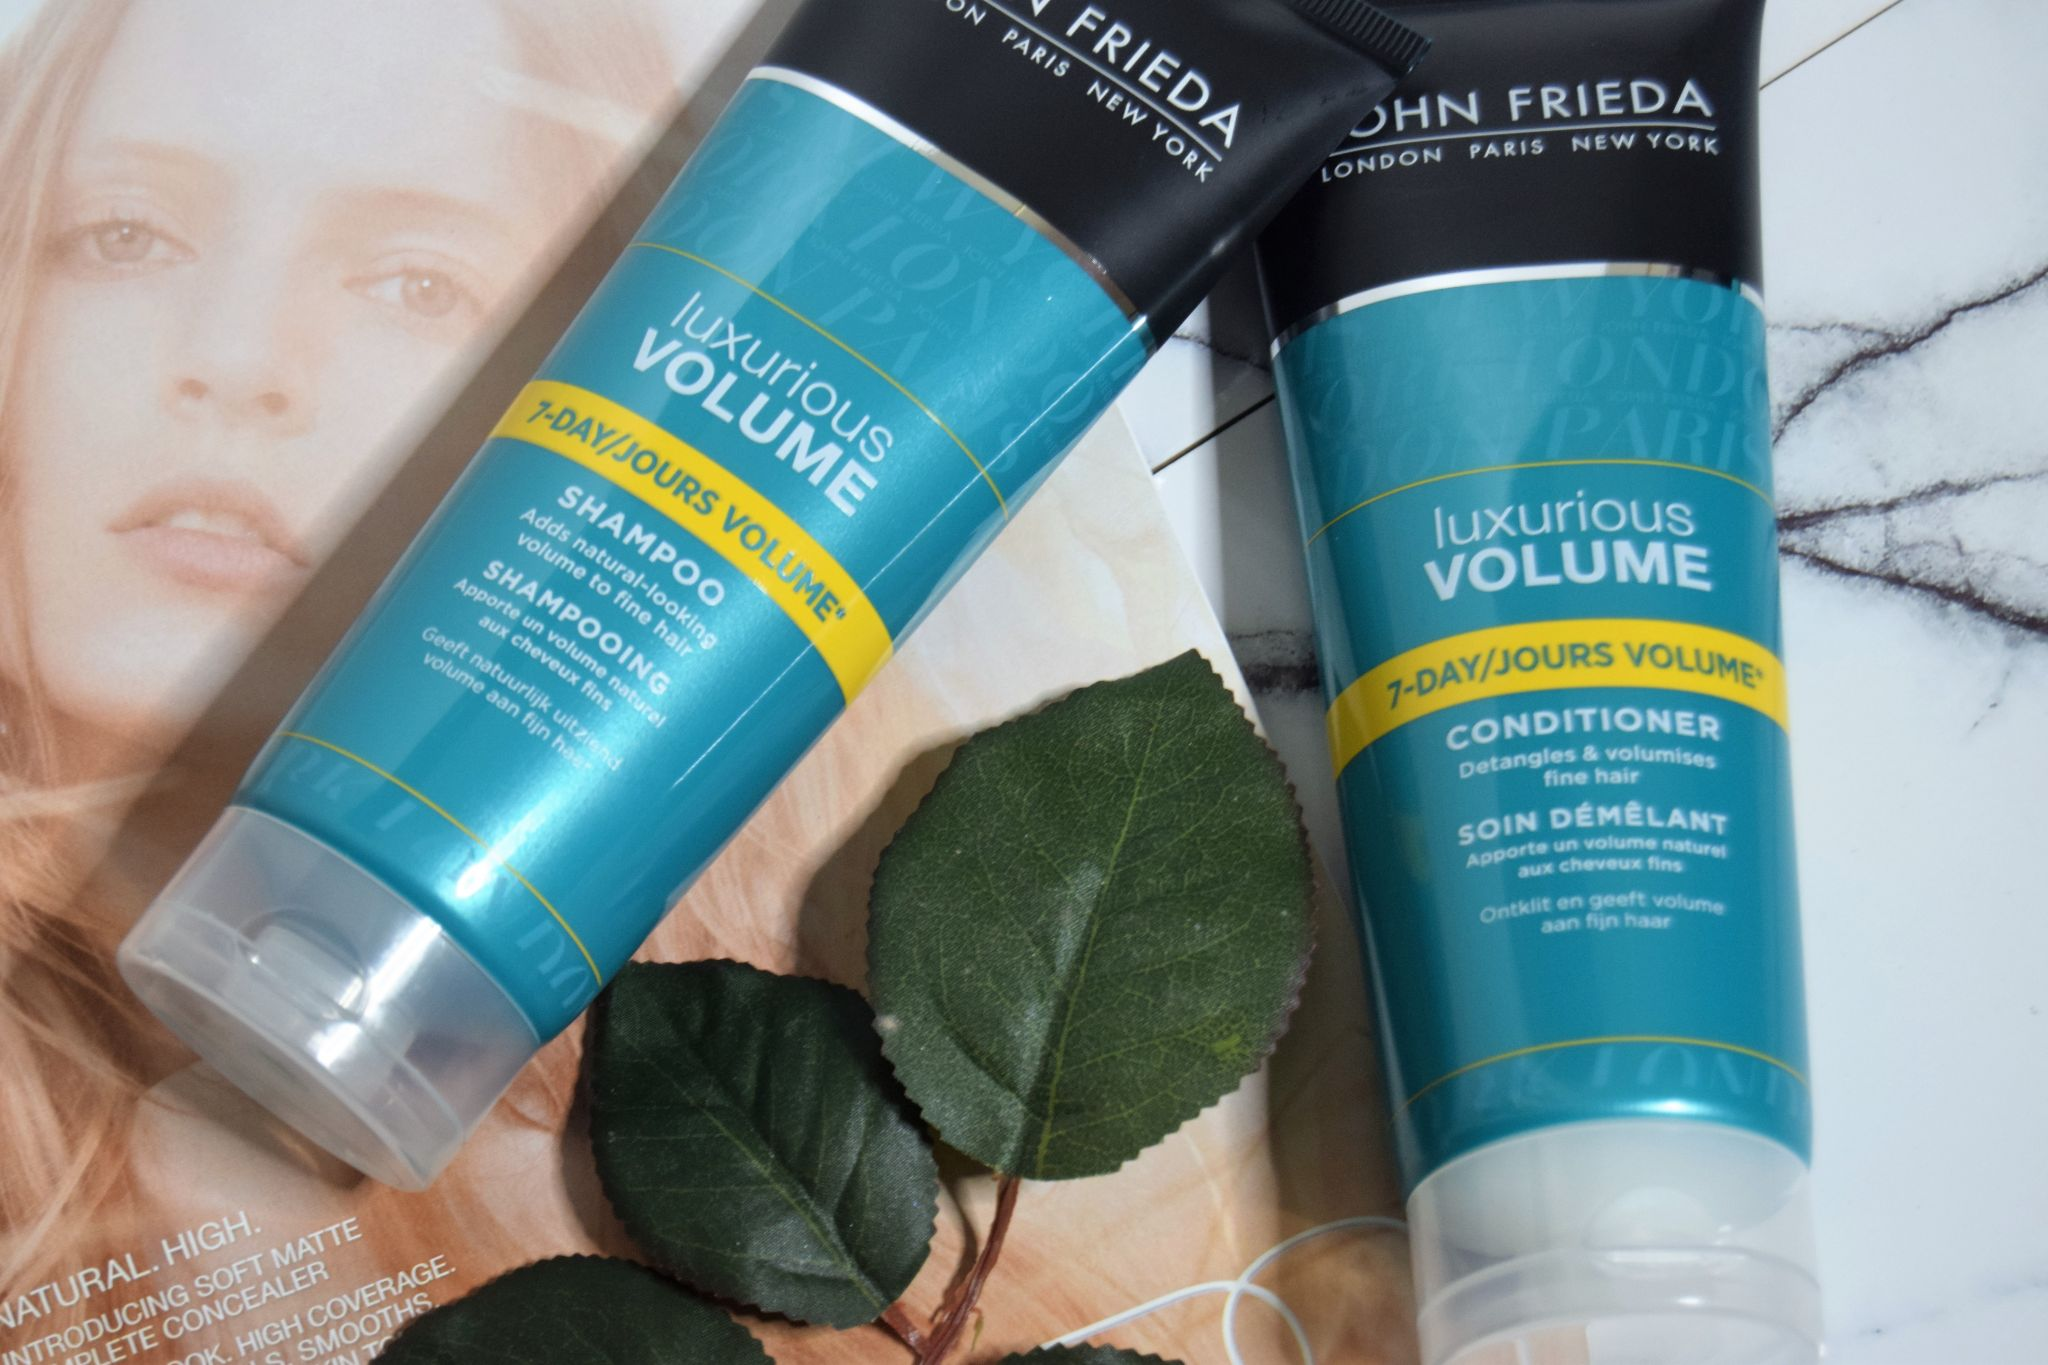 DSC 3277 1440x960 - Is Your Hair Ready For The Winter? John Frieda Luxurious Volume Review